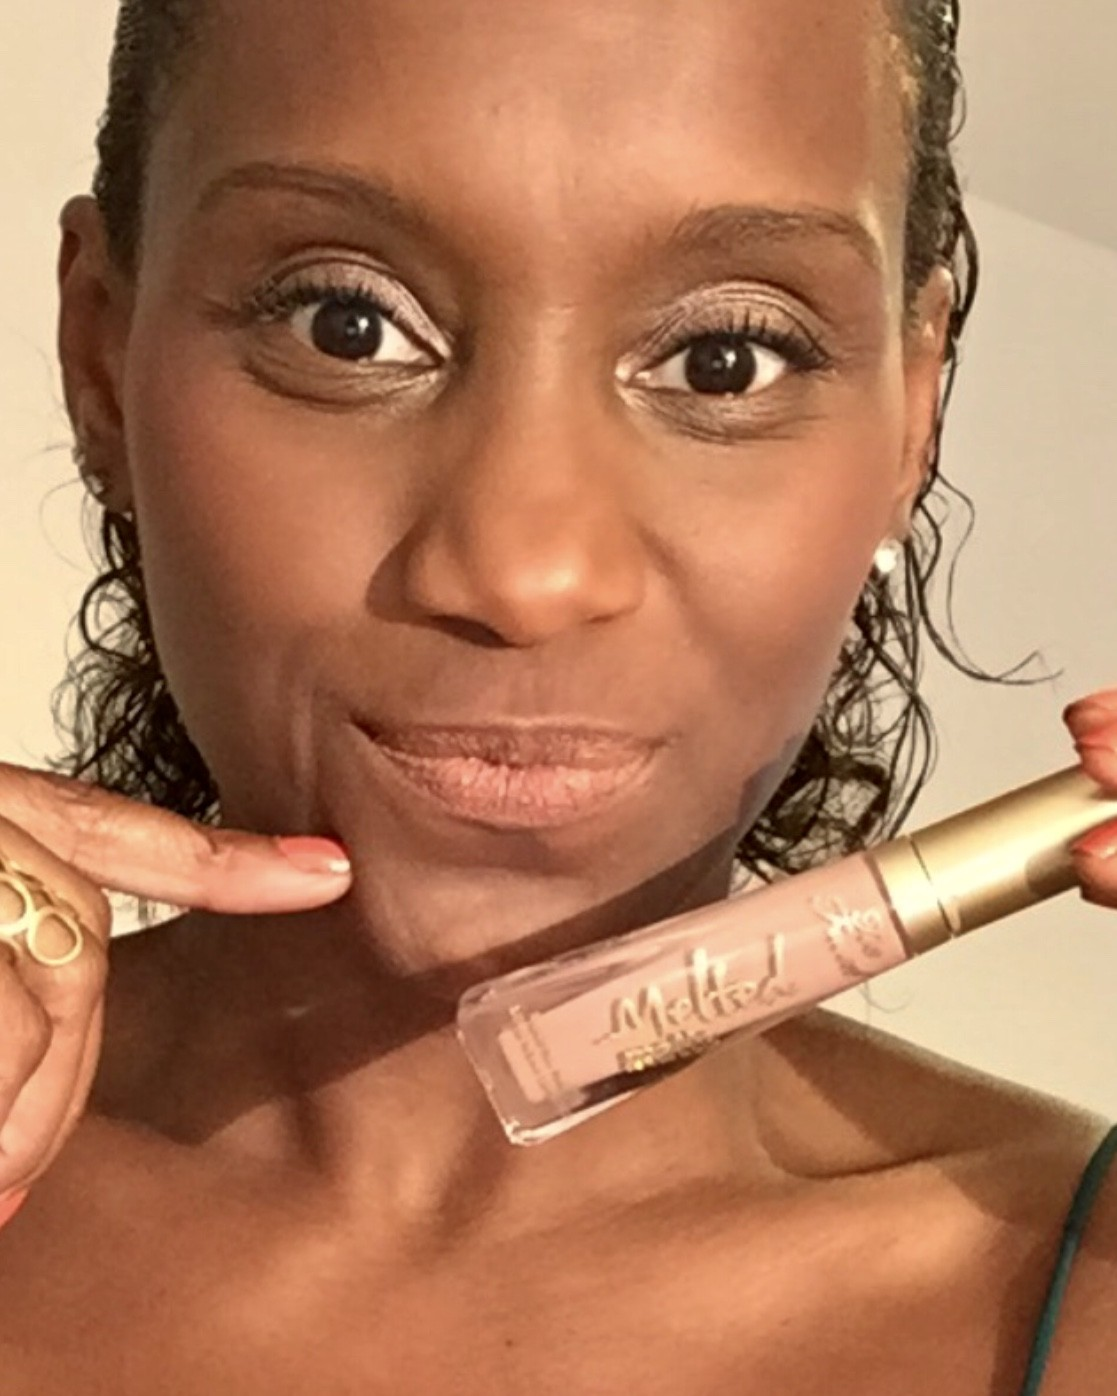 Batons nude para pele negra: Melted matte Liquified Holy Chic, Too Faced (Foto: Arquivo pessoal)